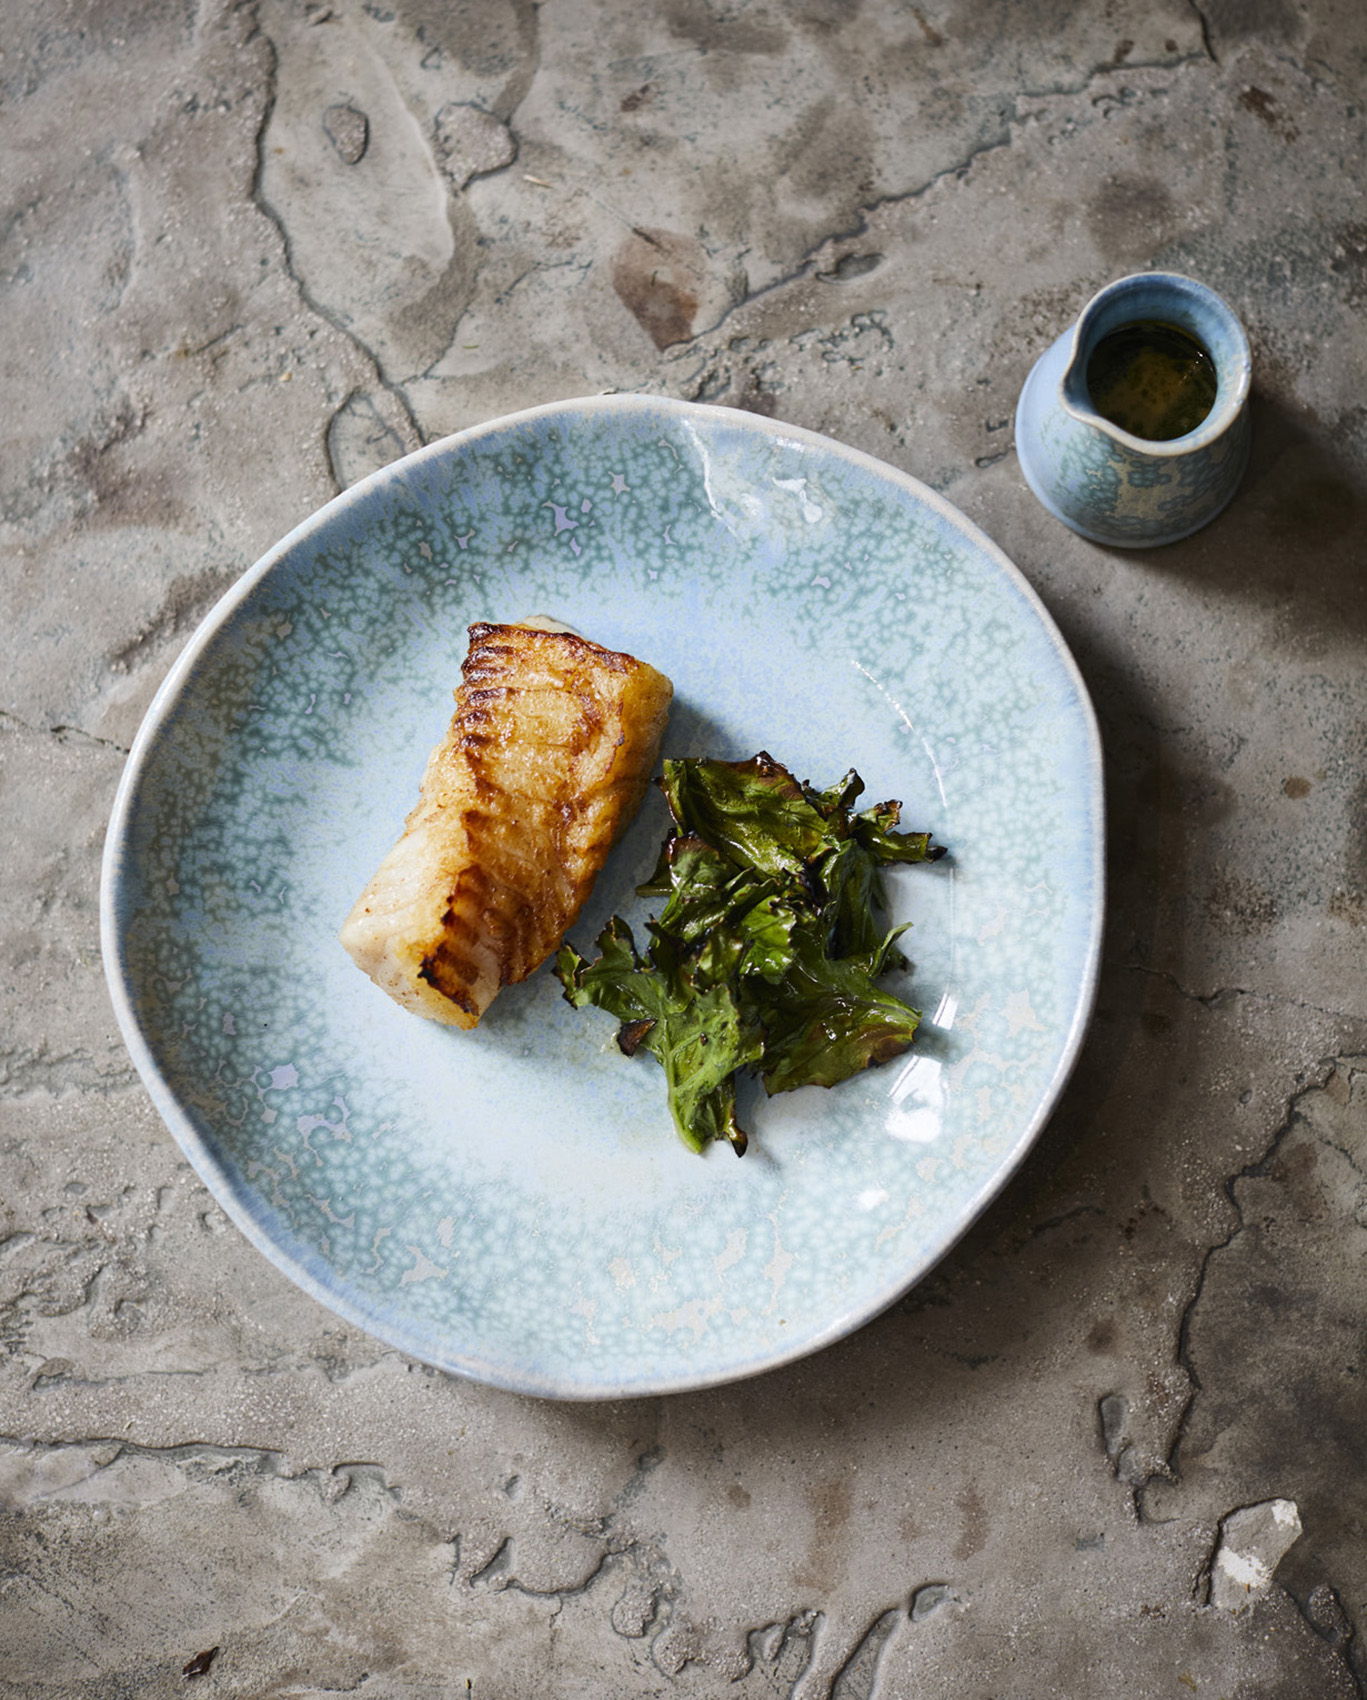 SteveRyan_Photographer_Food_Hake_SeaKale_28